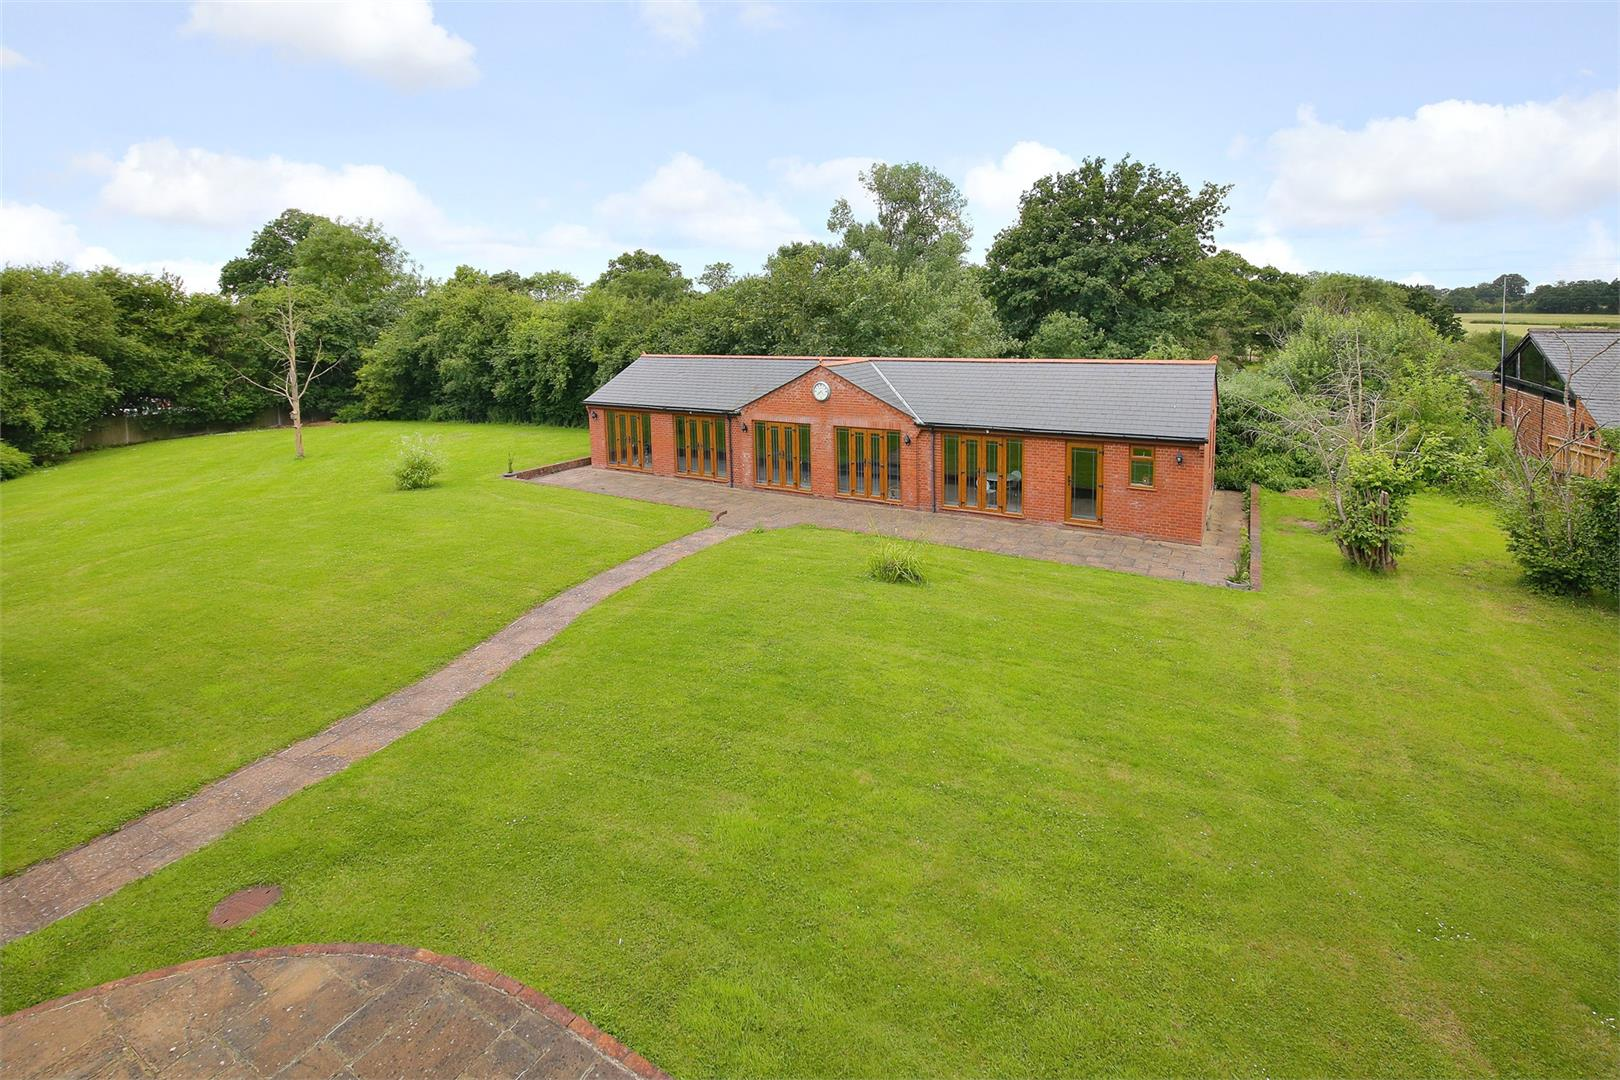 6 bed to rent in Elstree - (Property Image 11)